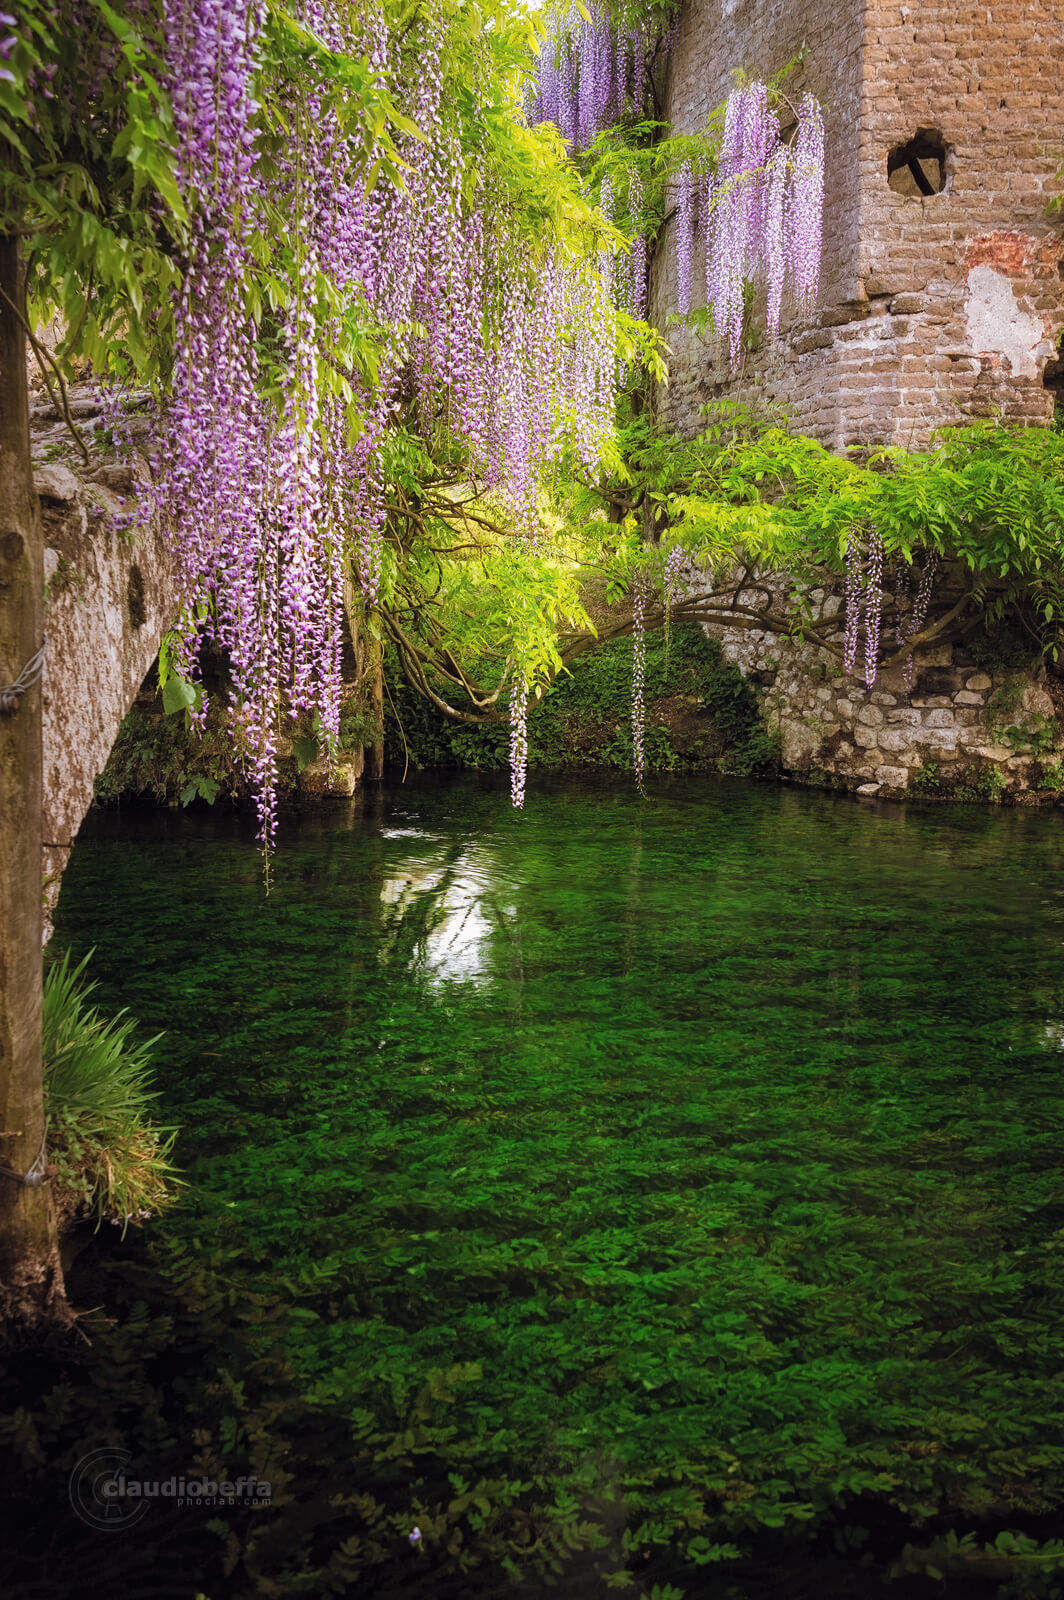 Garden of Ninfa, Garden, Ninfa, Italy, Blooming life, Wisteria, flowers, Nature, River, Bridge, Spring, Travel, Travel Photography, Ancient, Romantic